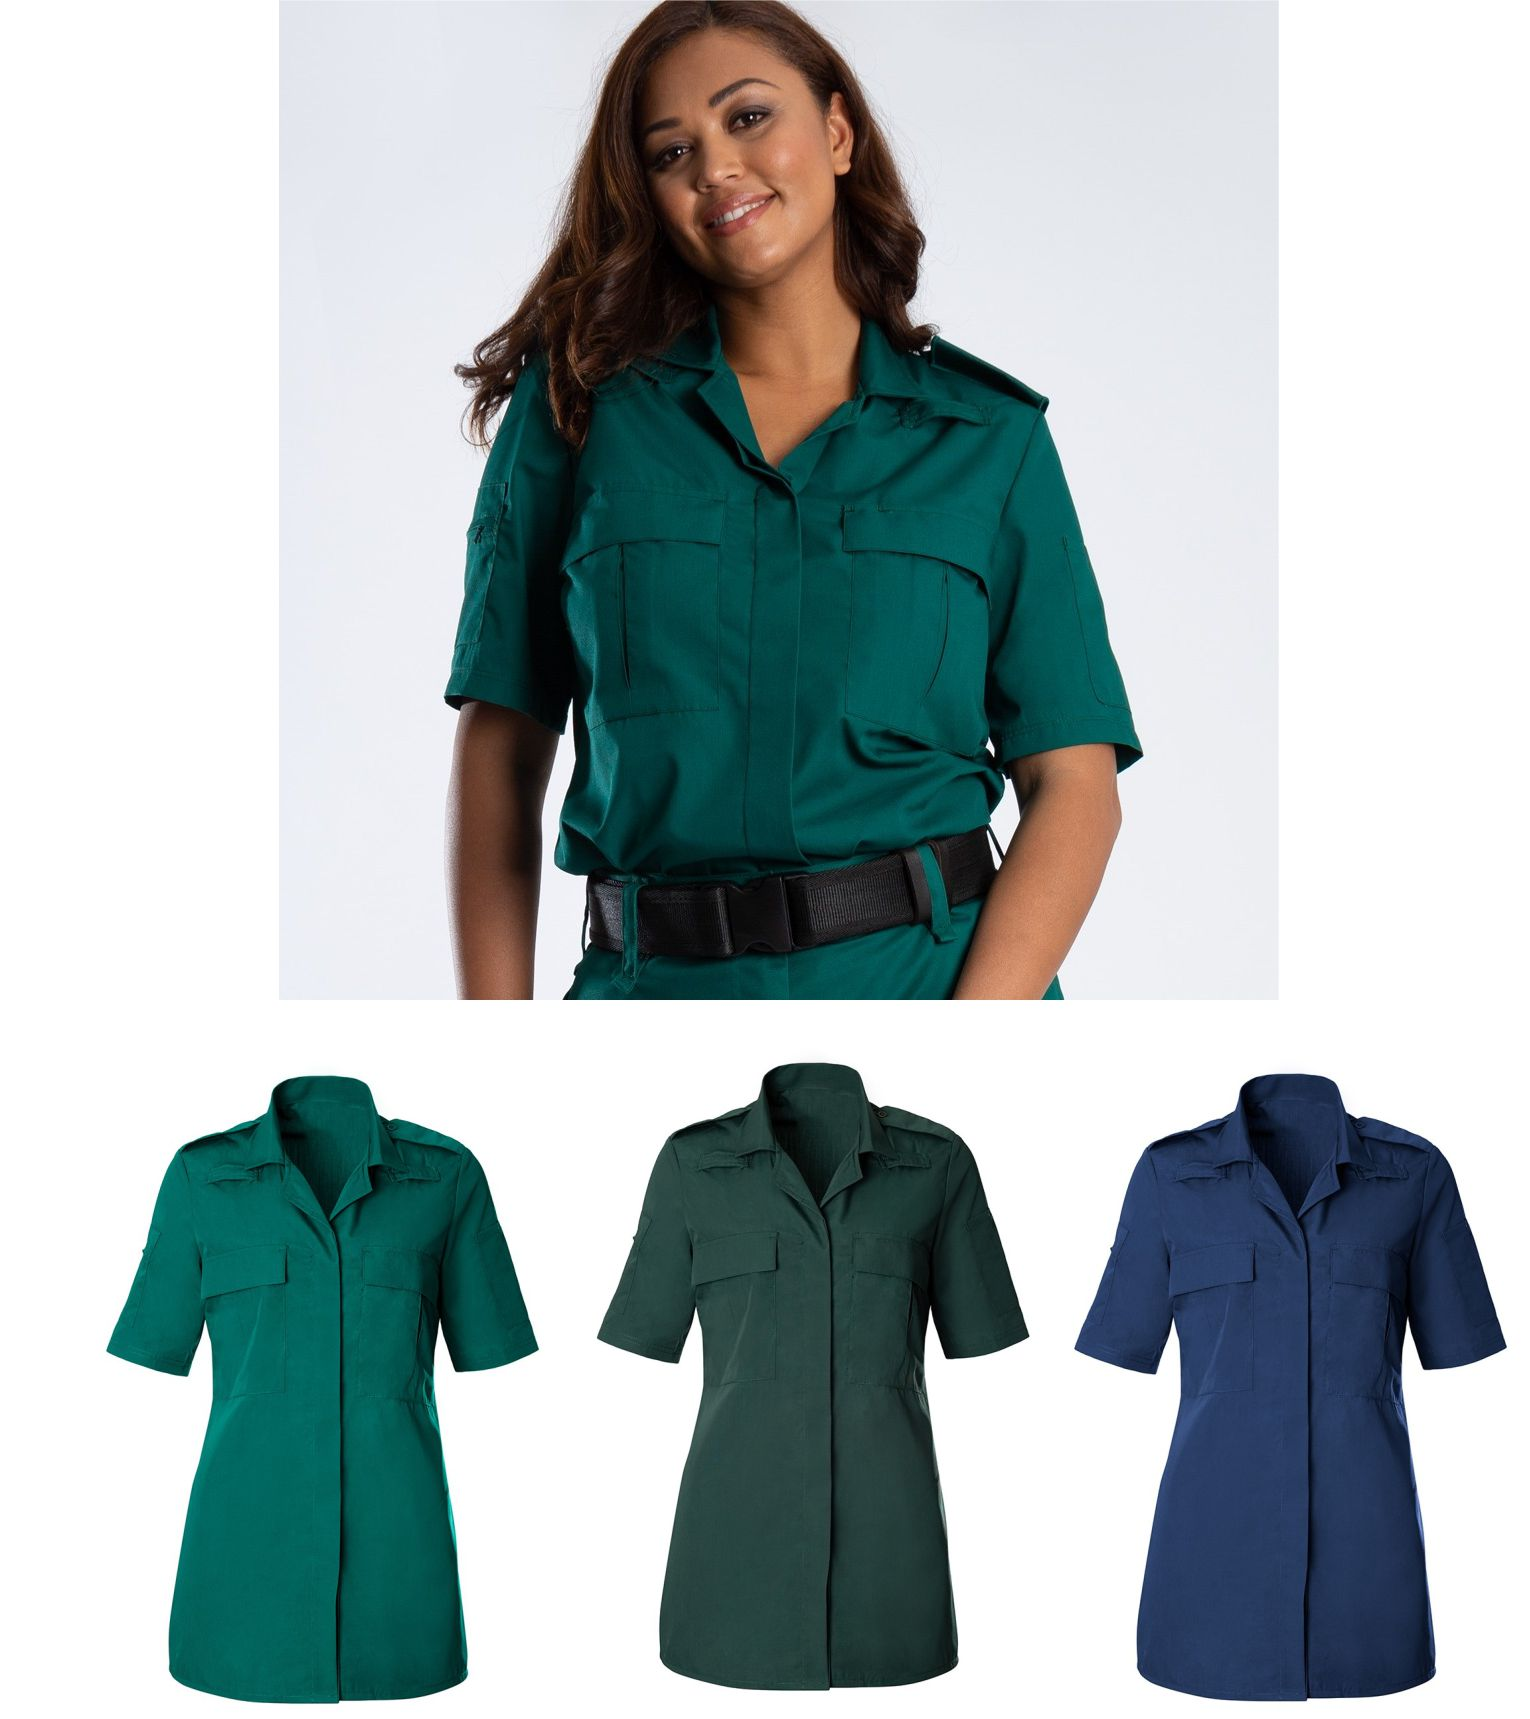 HP102 Women's Ambulance Shirt